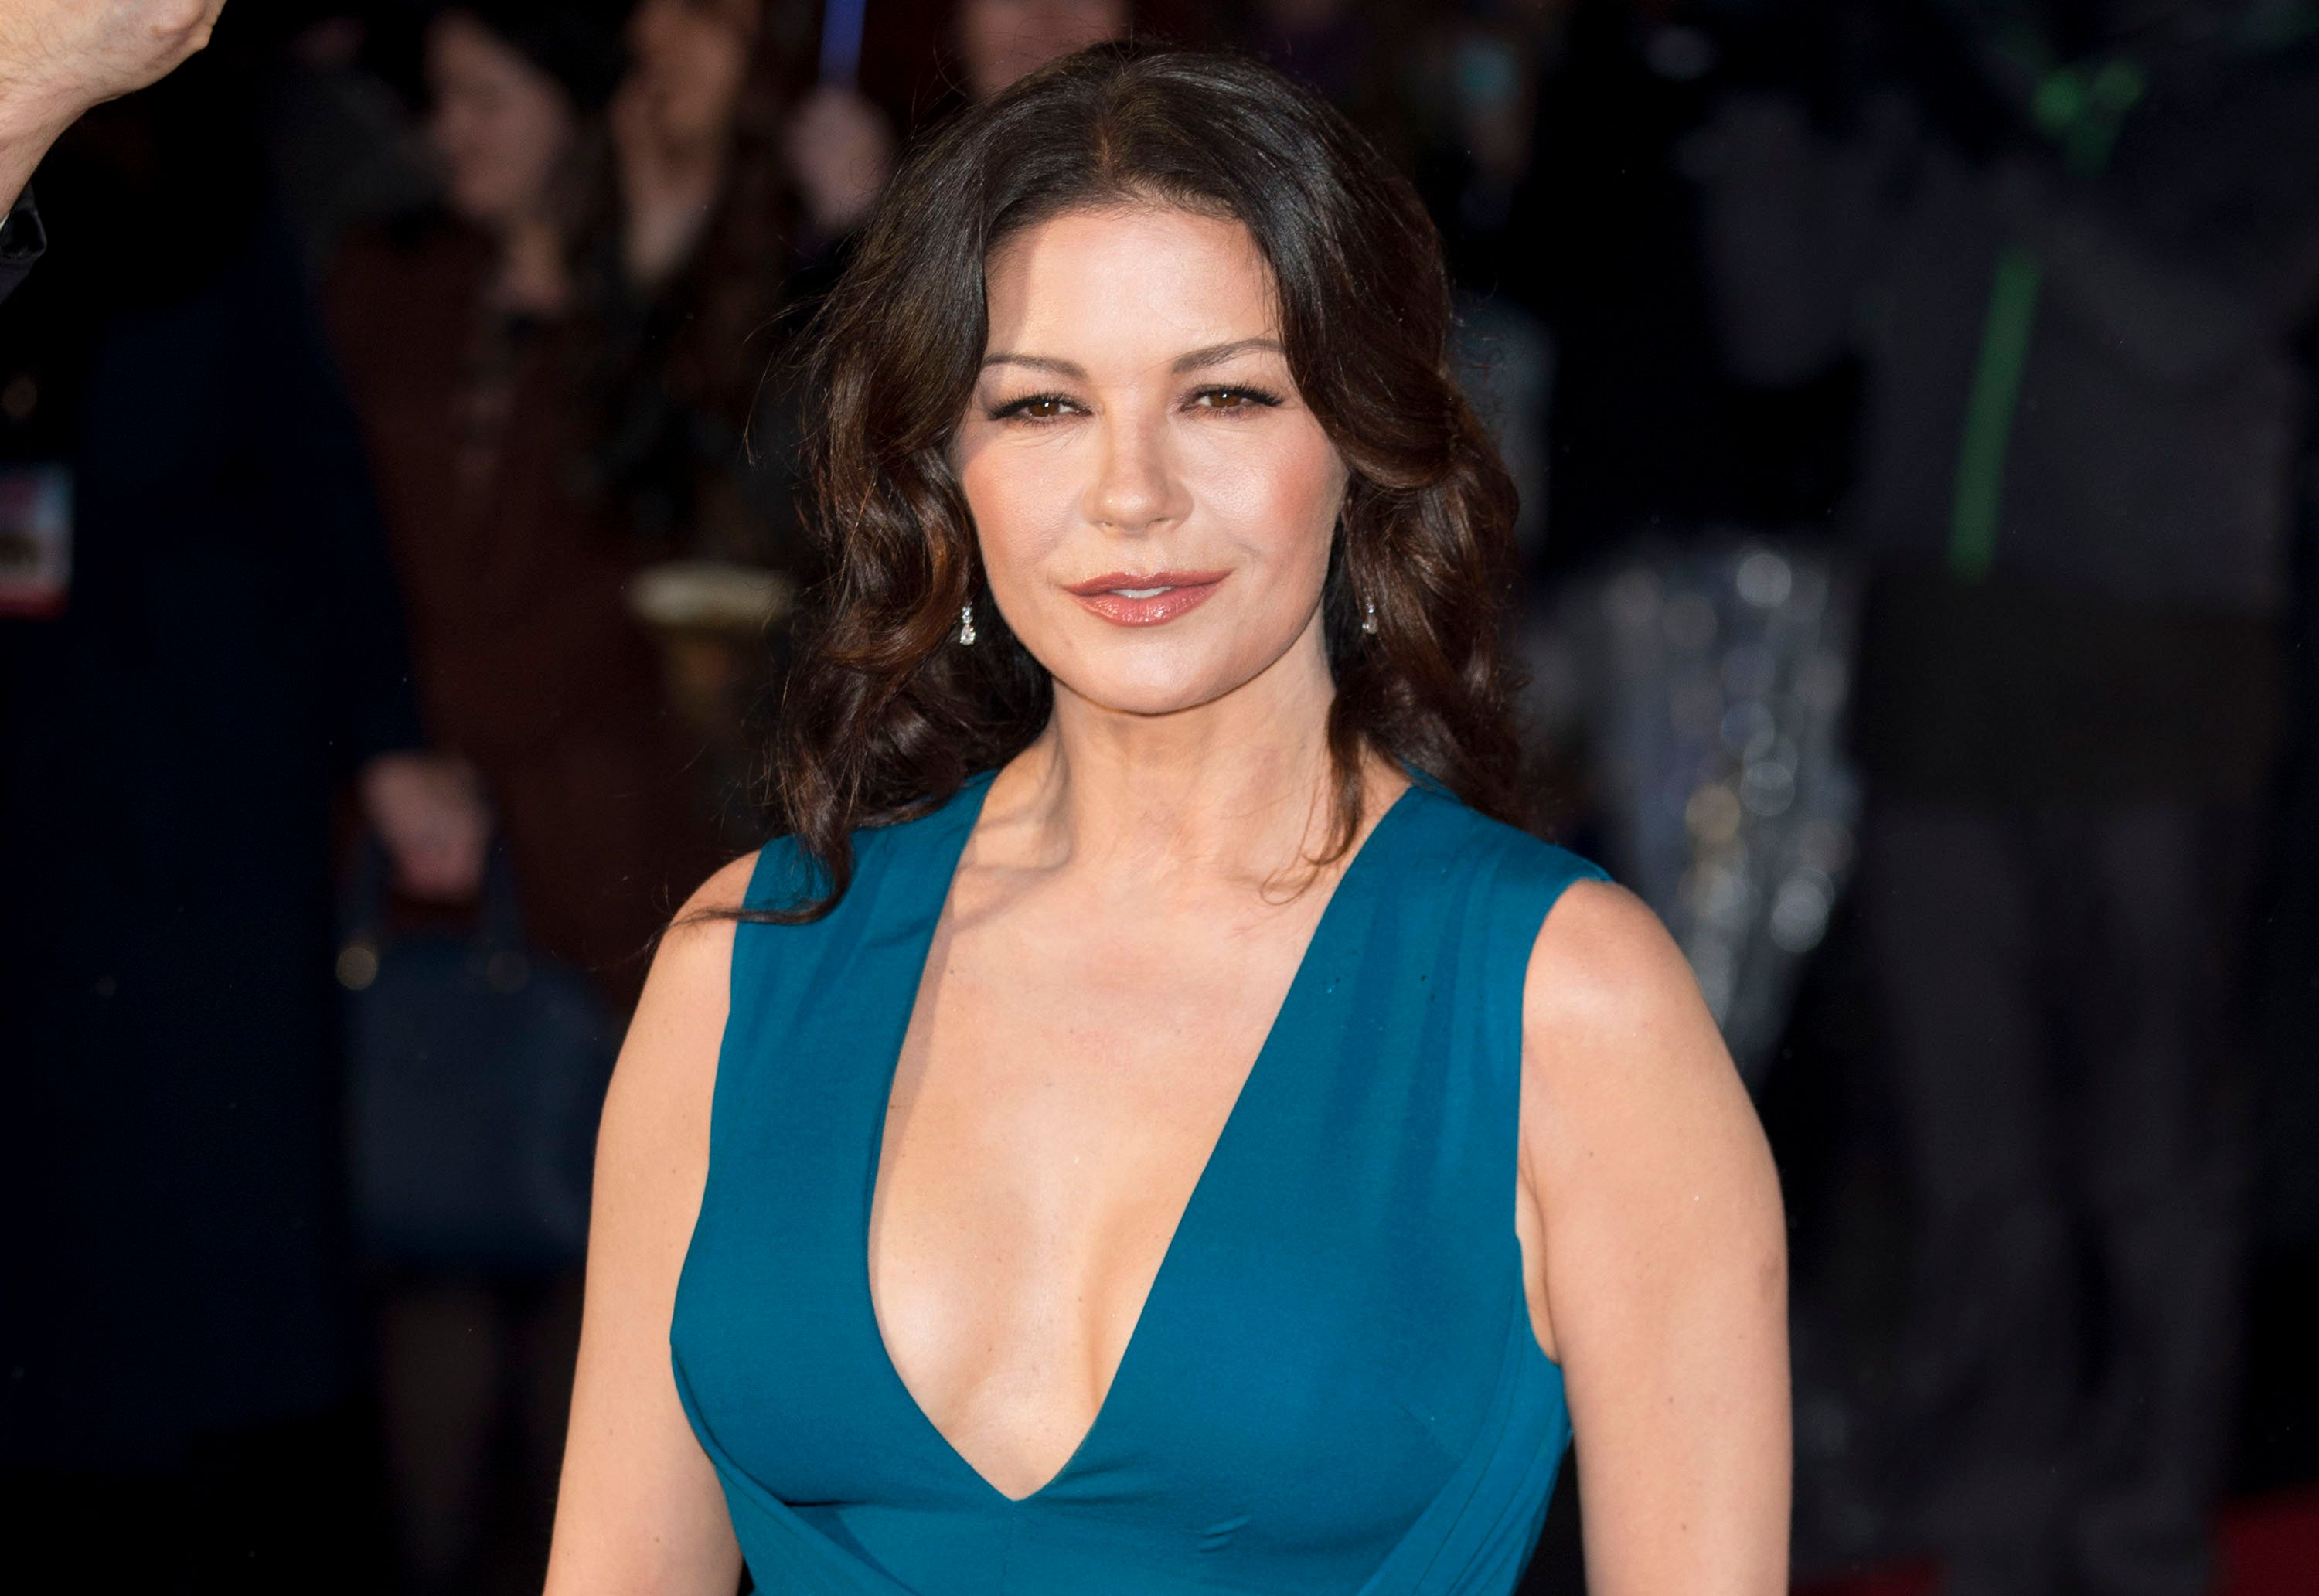 LONDON, ENGLAND - JANUARY 26:  Catherine Zeta-Jones attends 'Dad's Army' World Premiere  on January 26, 2016 in London, United Kingdom.  (Photo by Mark Cuthbert/UK Press via Getty Images)